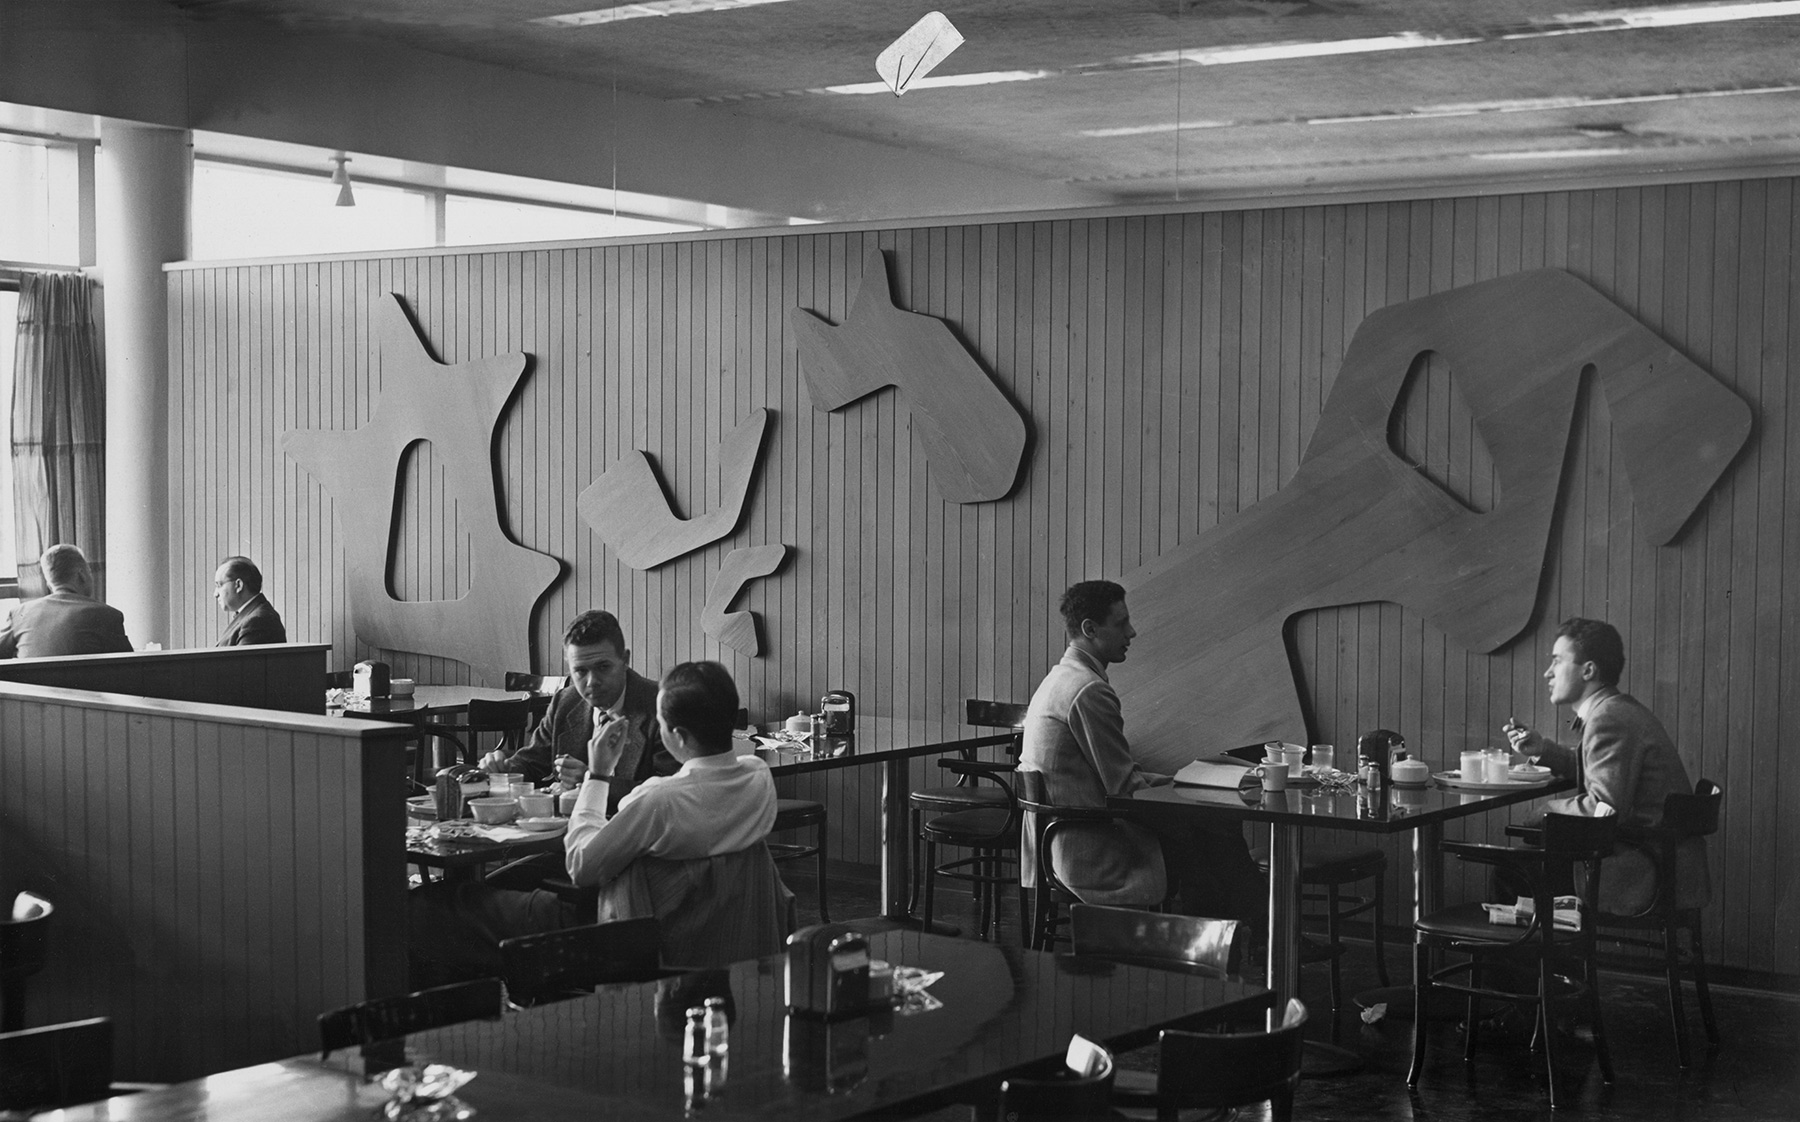 Hans Arp's Constellations as displayed in Harkness Commons Dining Room, Harvard University, c. 1950. Stiftung Arp e.V., Berlin/Rolandswerth. Photo: D. H. Wright.